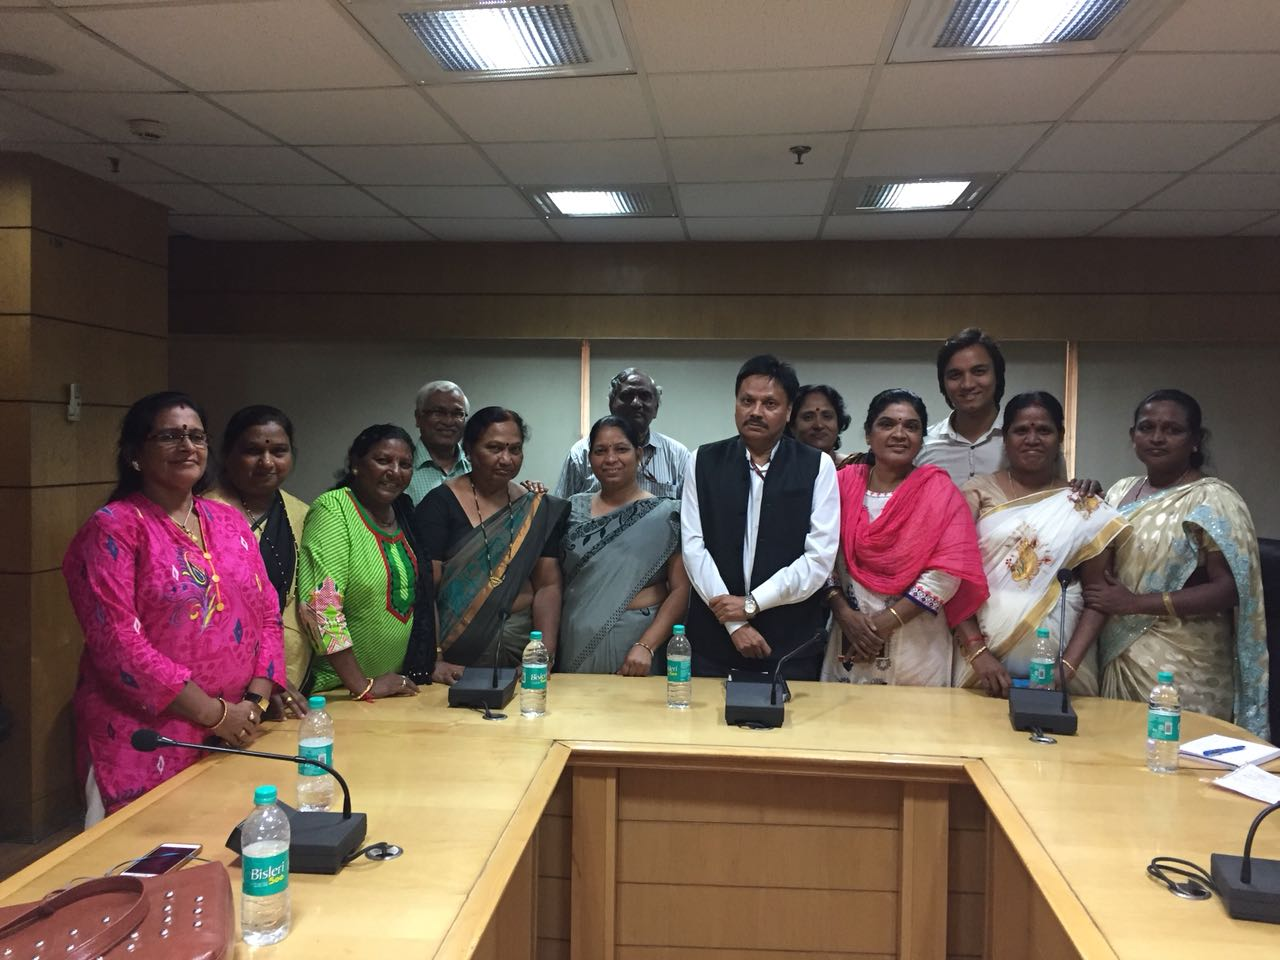 Ms.Jayamma,President CMM and others meets with Shri.Sanjeeva Kumar,IAS,Additional Secretary-Health,Govt.of India and Director General NACO -representing Community Issues and etc on 5th.Oct.2017 in New Delhi